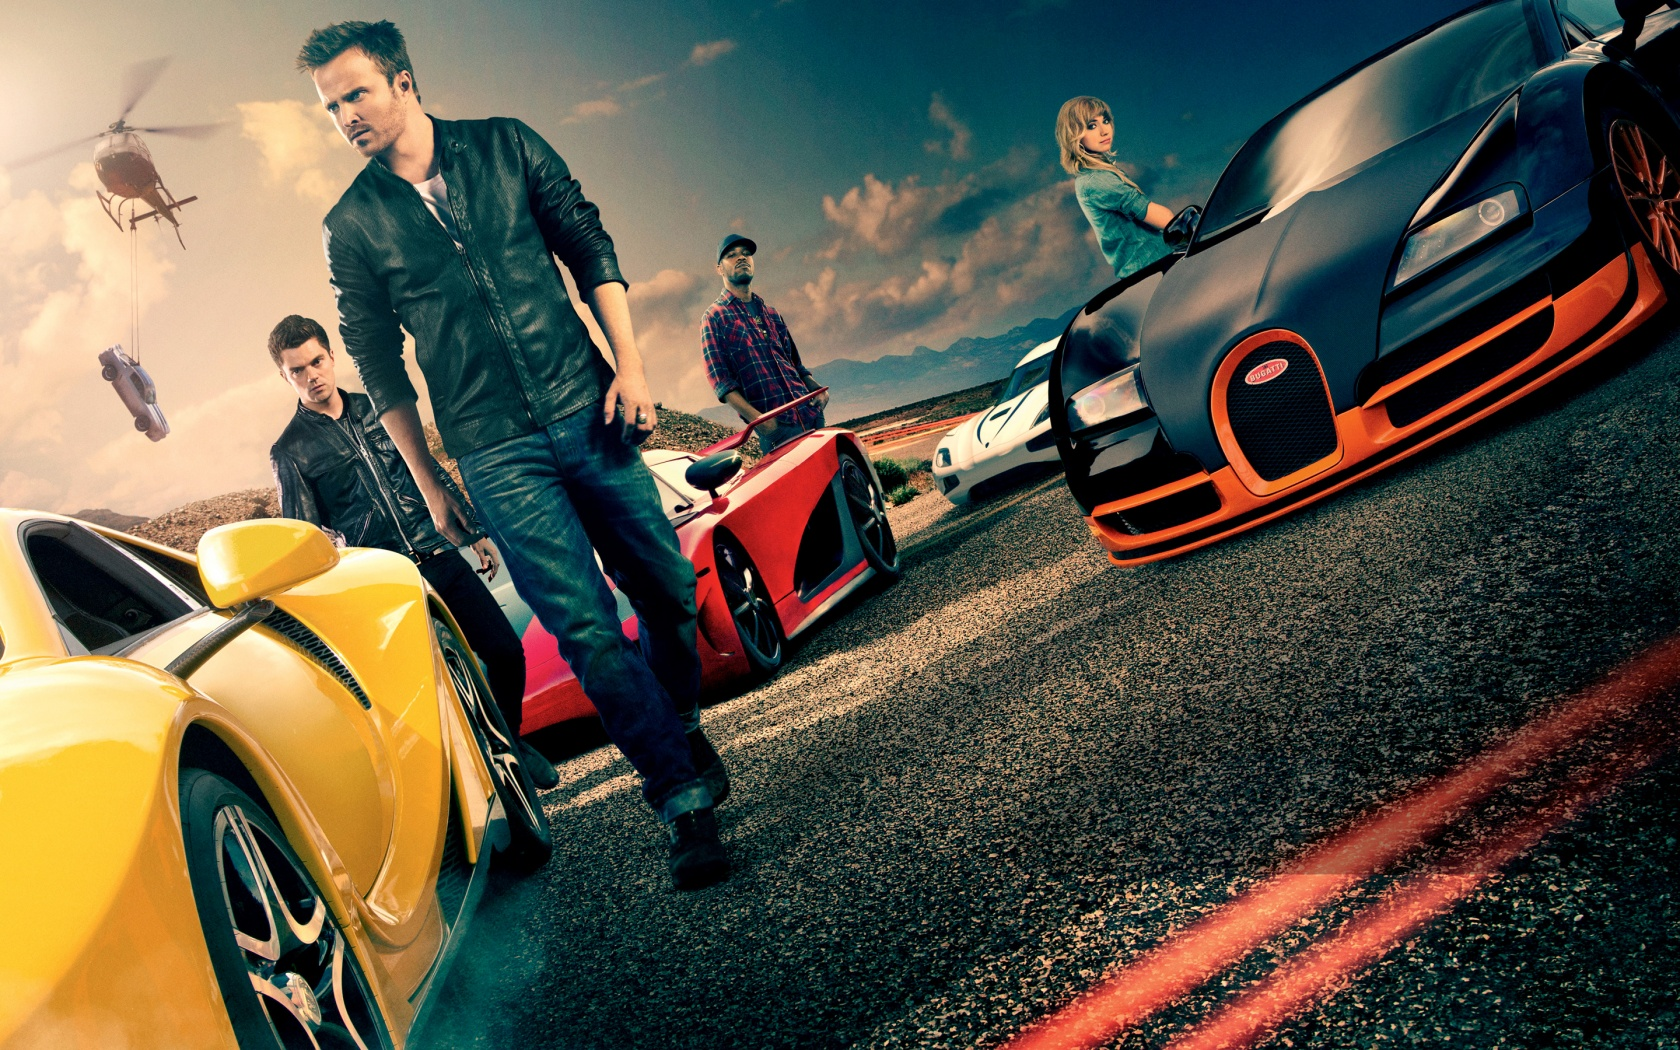 Need for Speed 2014 Movie Wallpapers HD Wallpapers 1680x1050